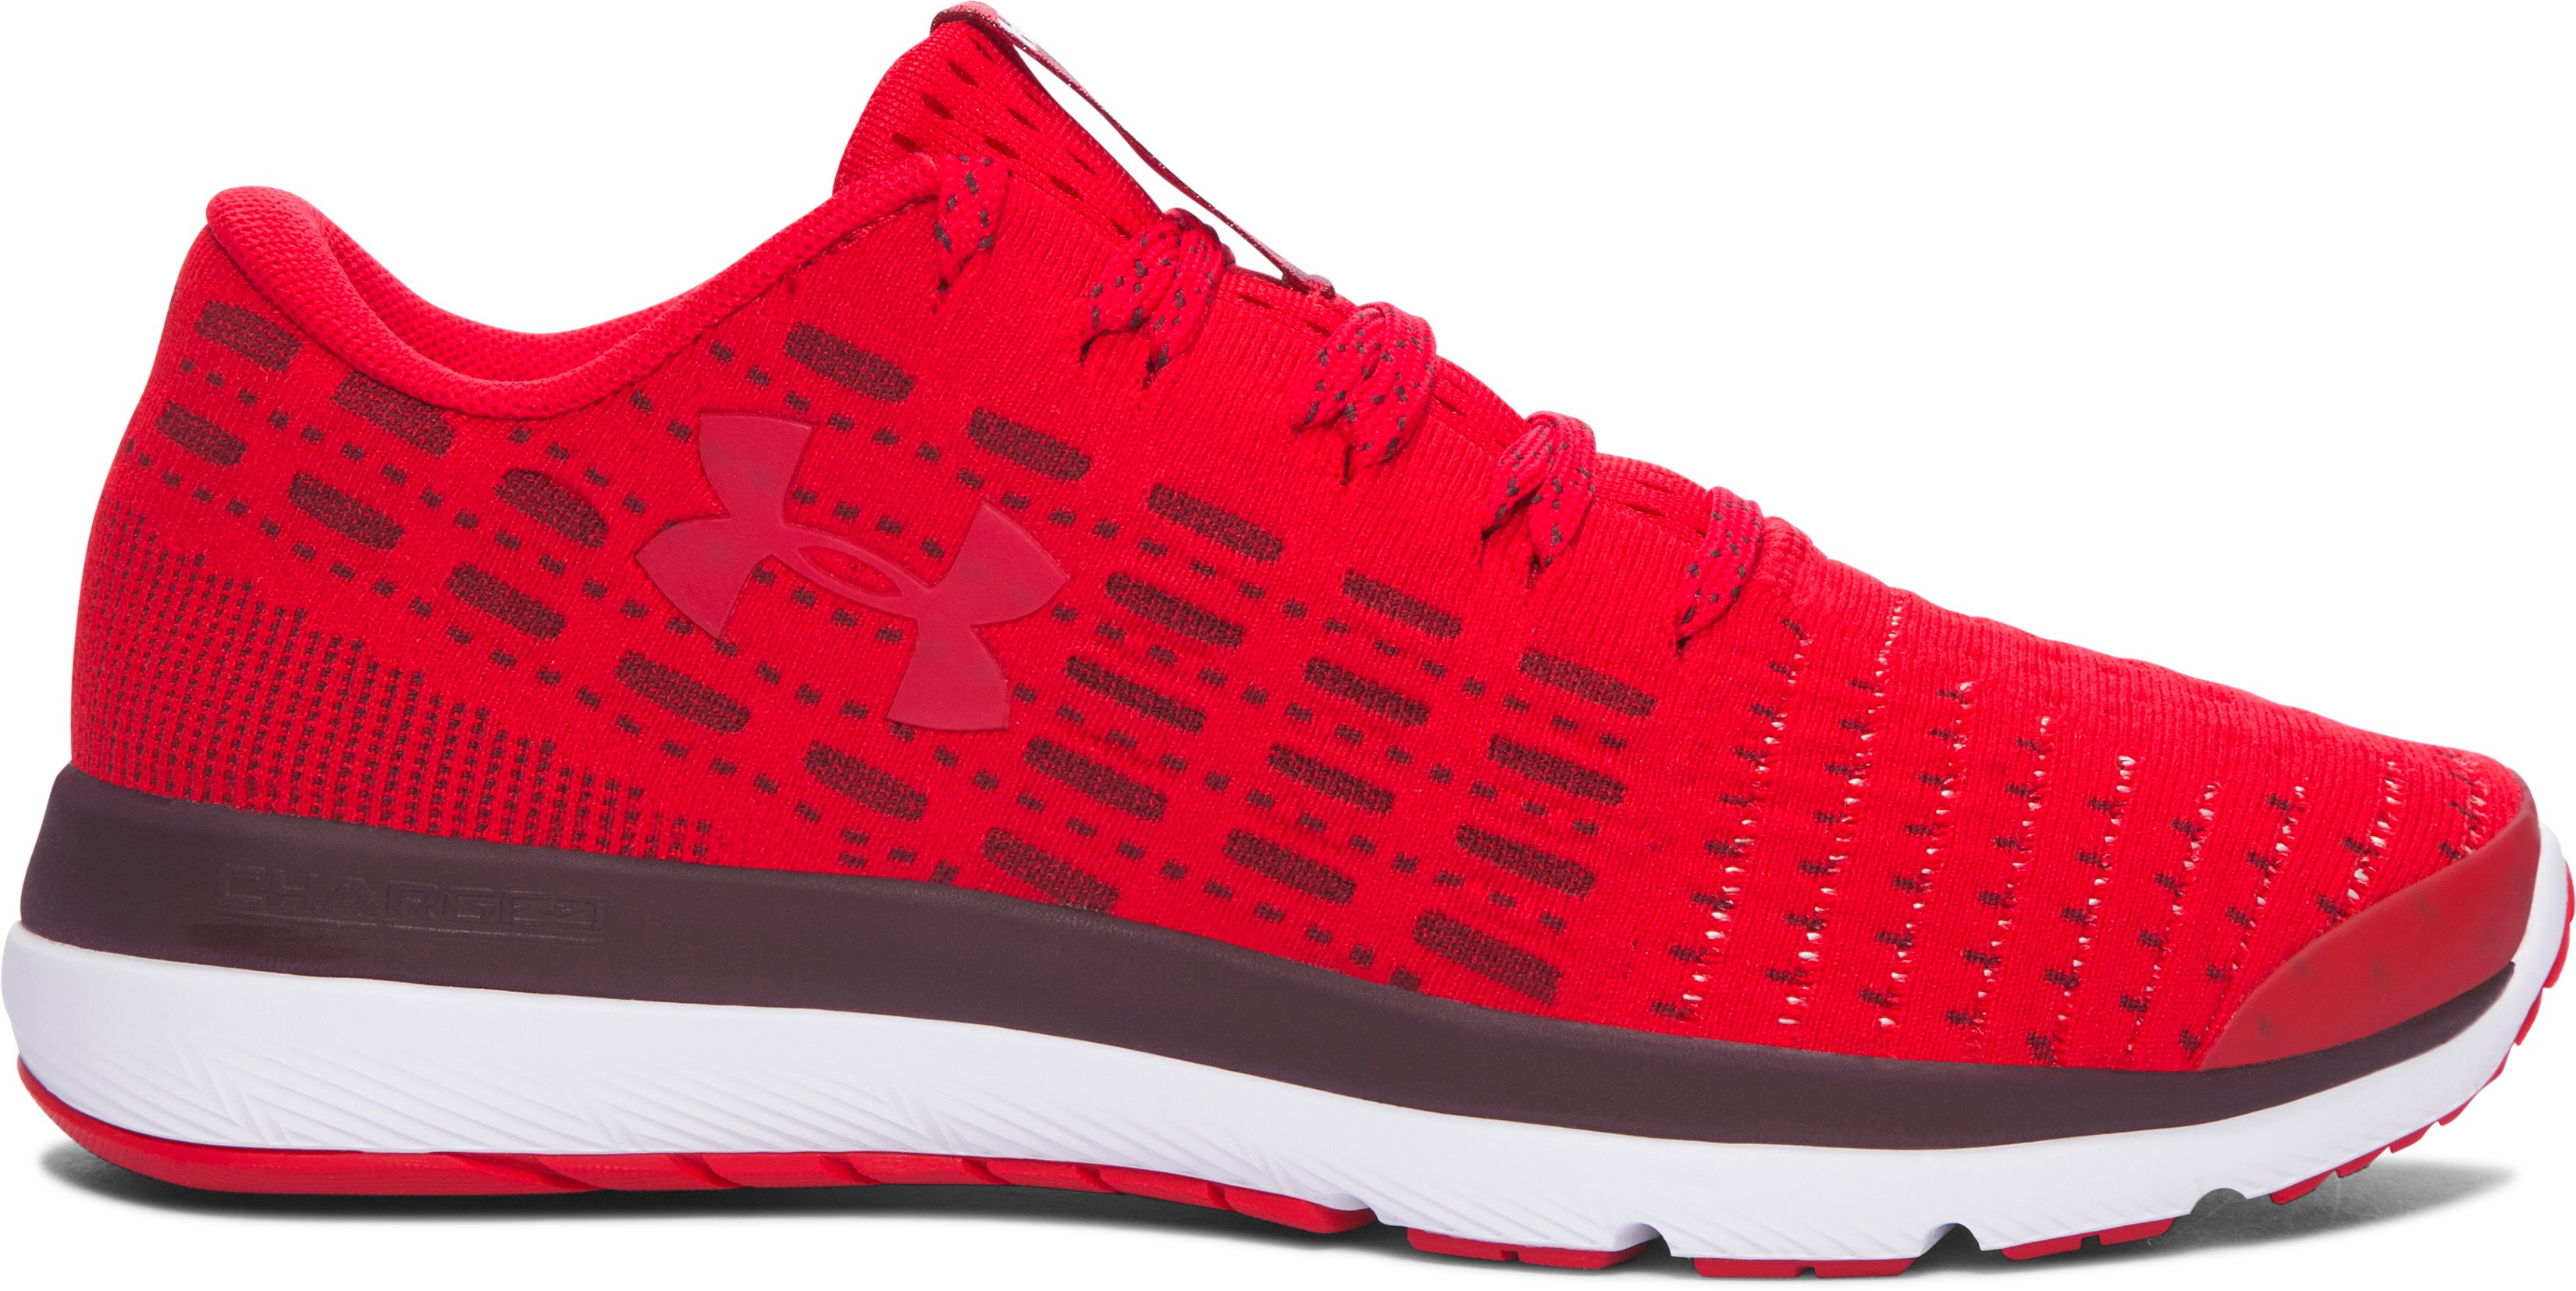 Boys' Grade School UA Threadborne Slingflex Shoes, Red, zoomed image